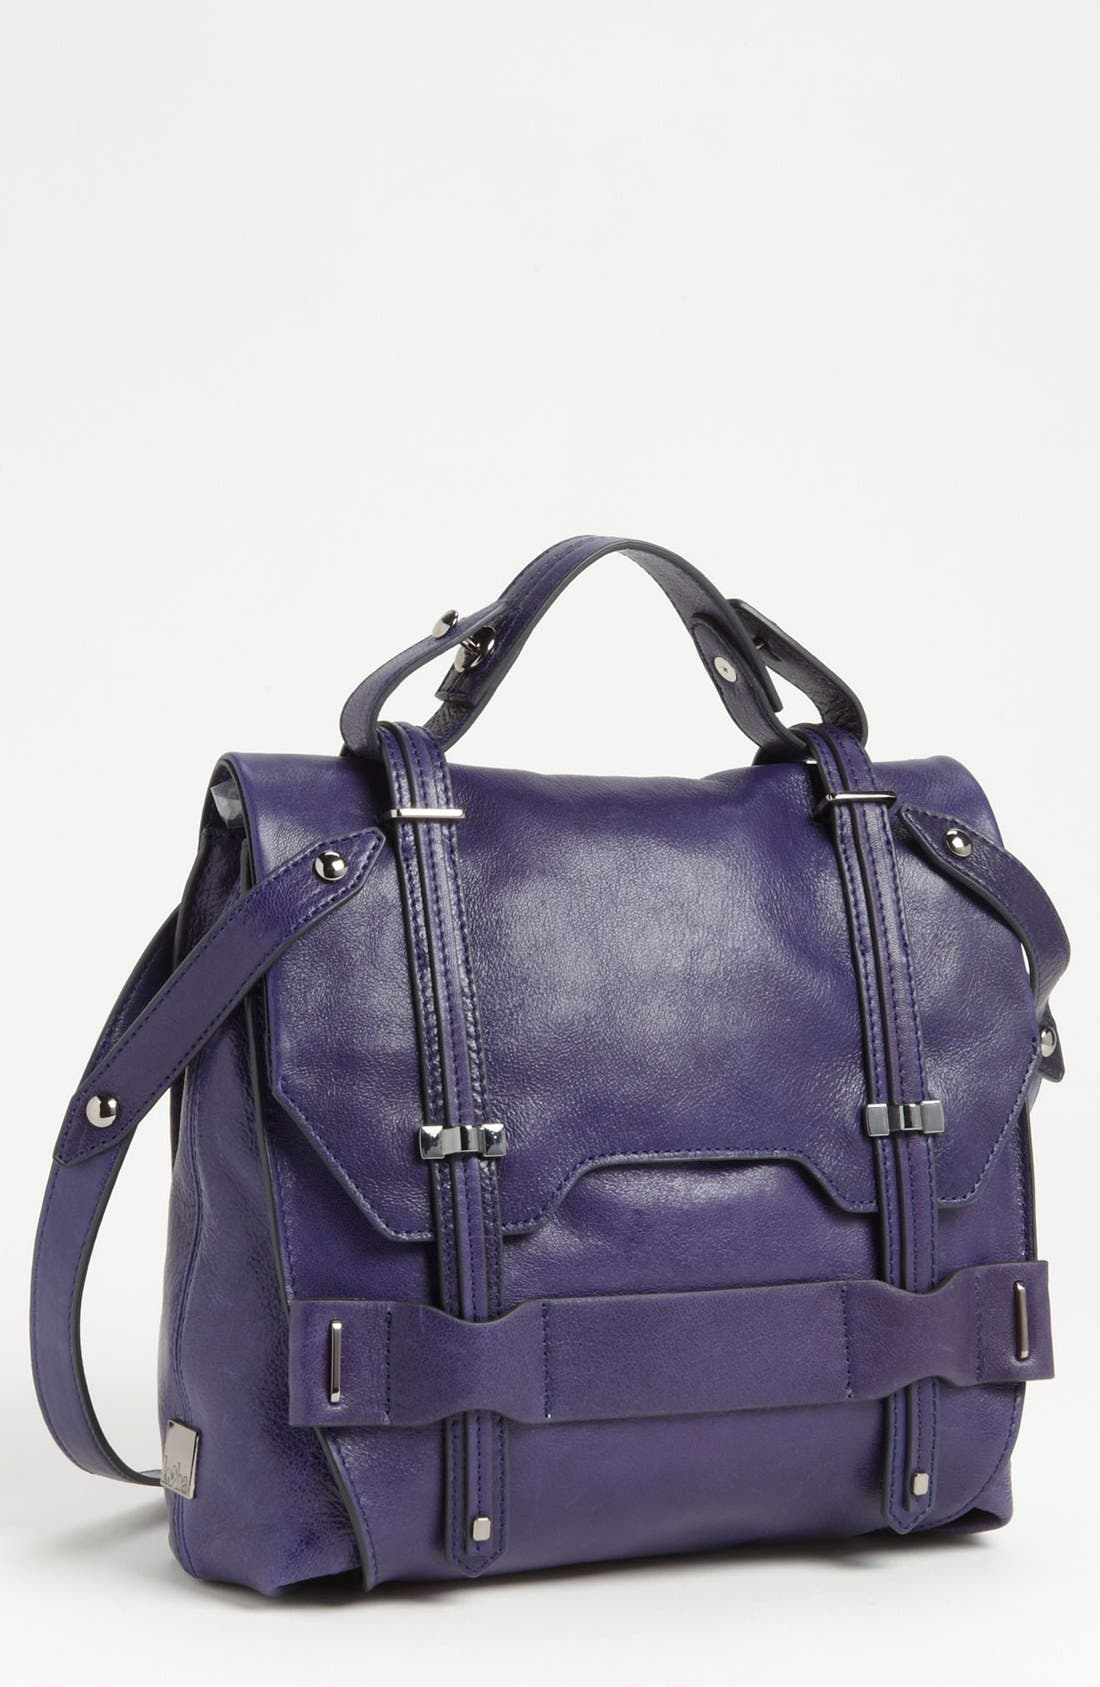 Alternate Image 1 Selected - Kooba 'Jane' Shoulder Bag